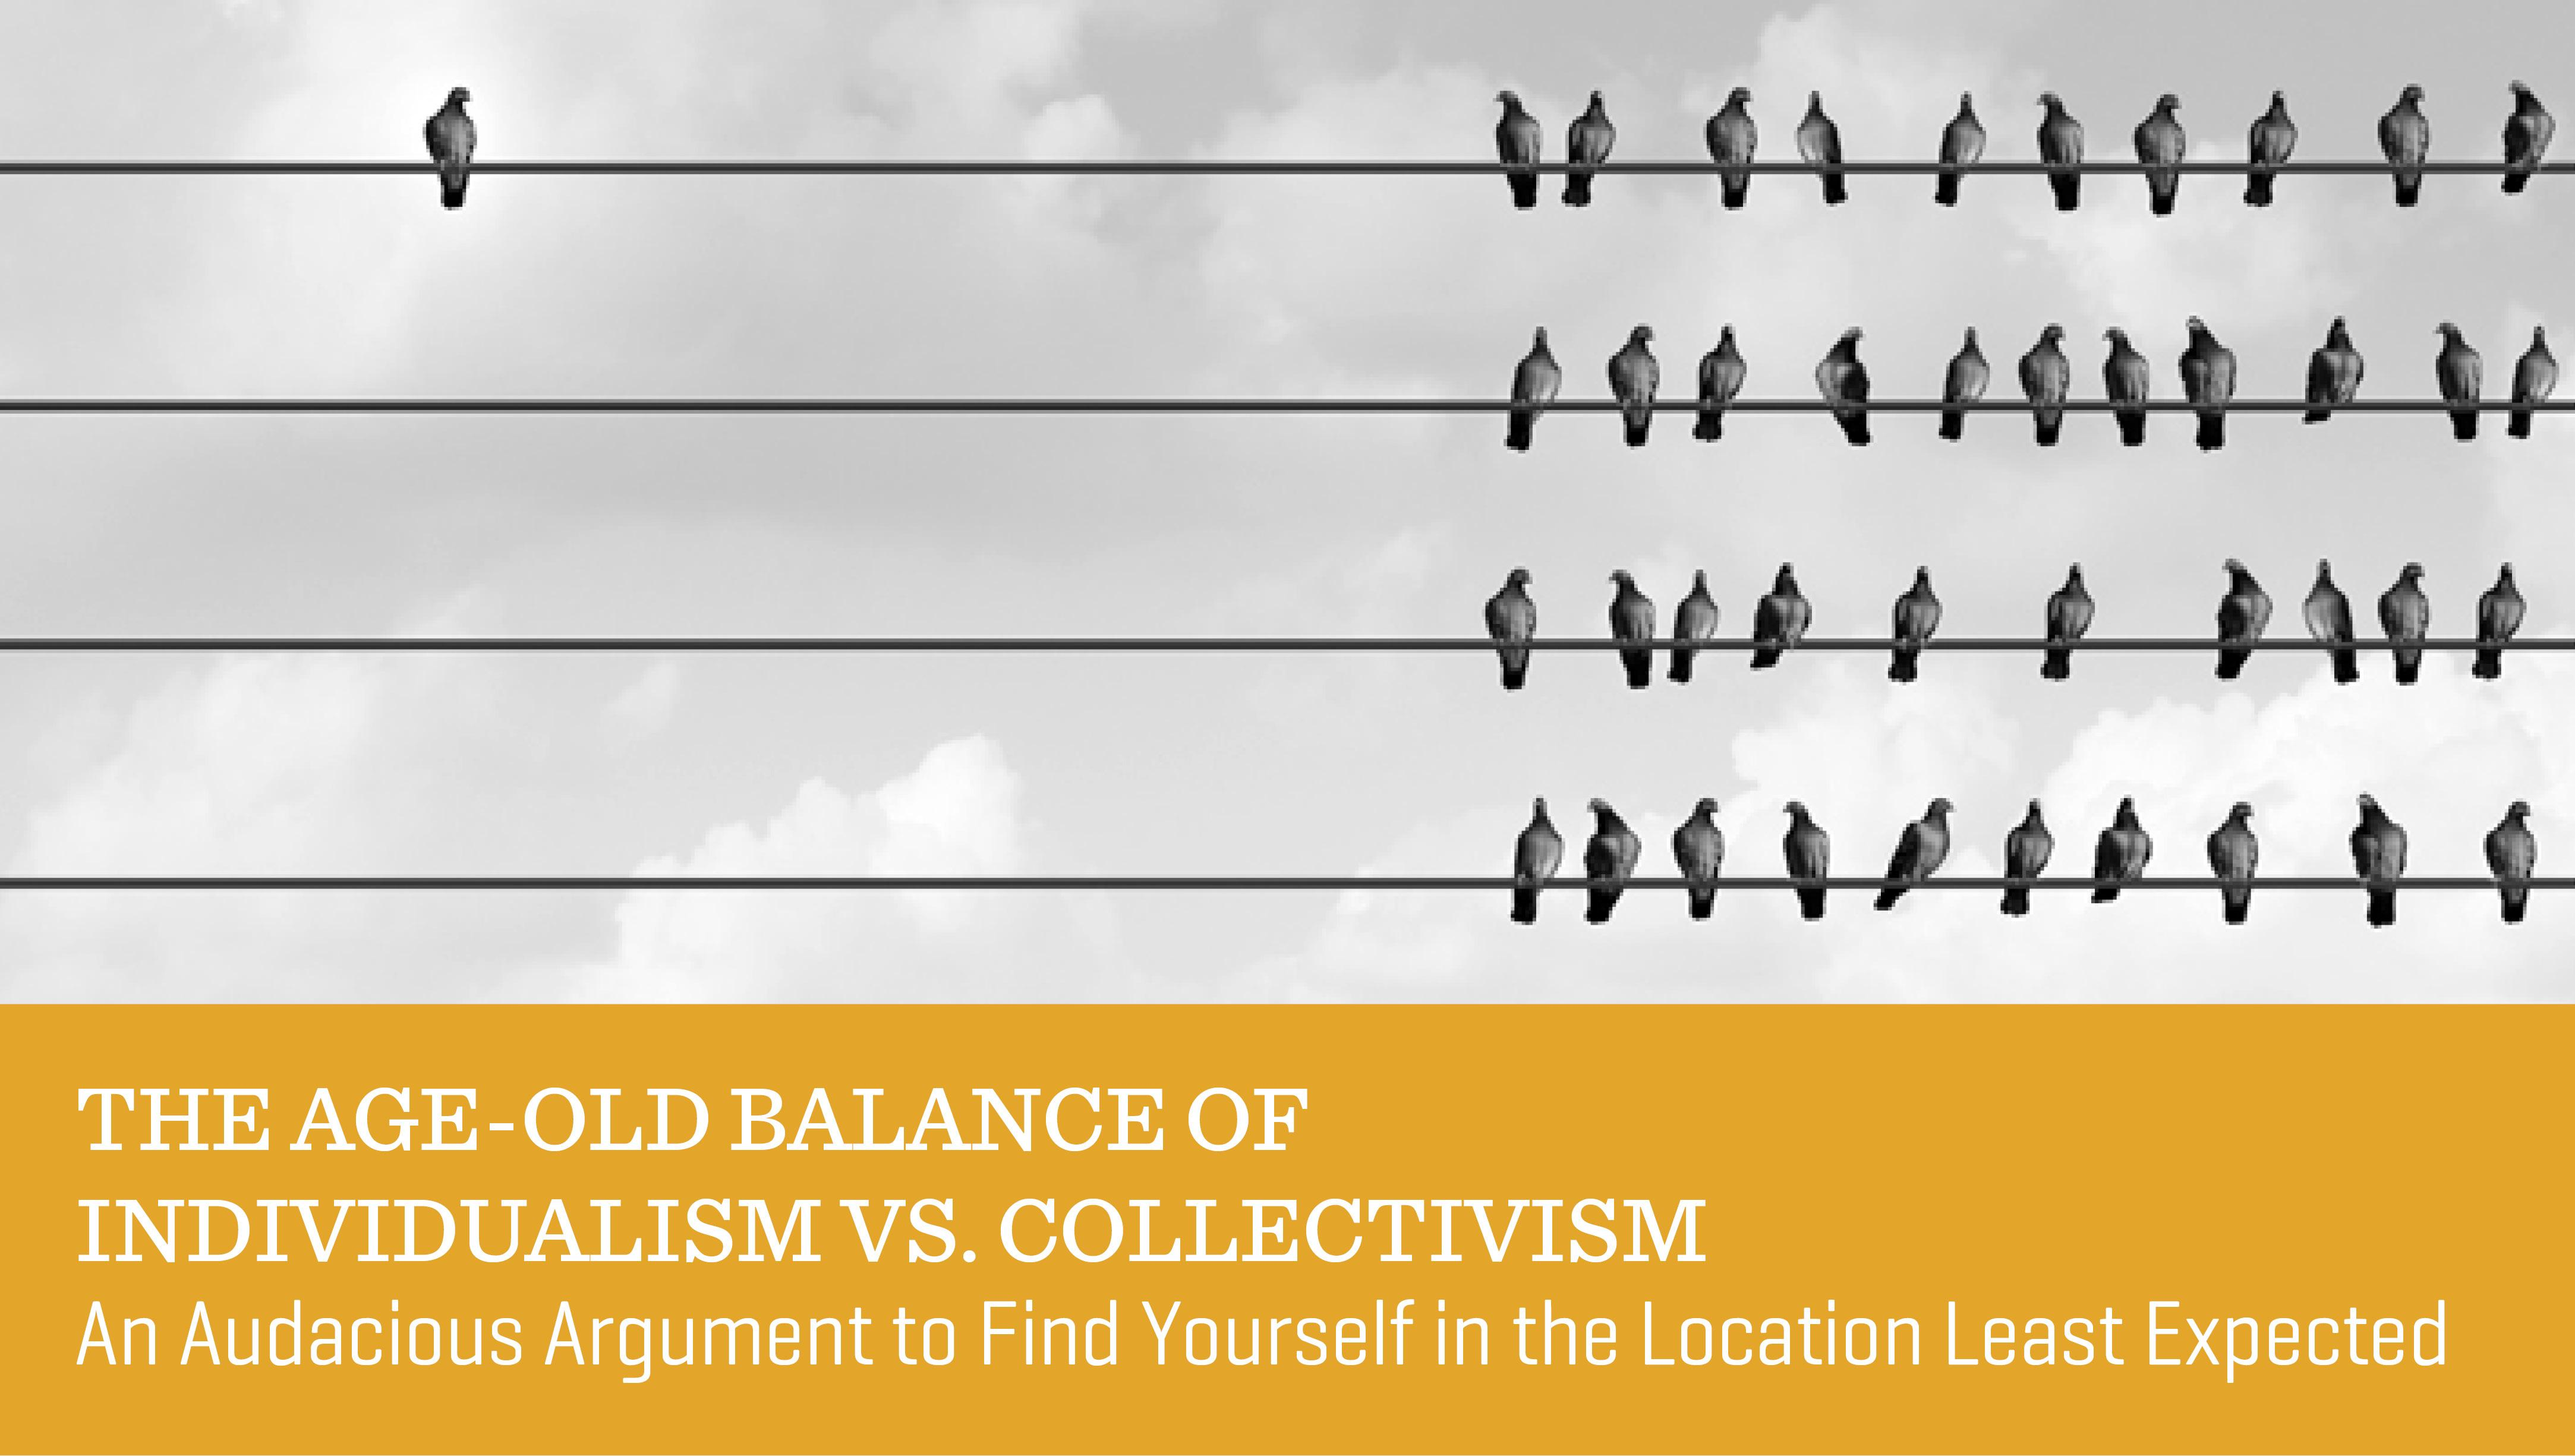 The Age-Old Balance of Individualism vs. Collectivism